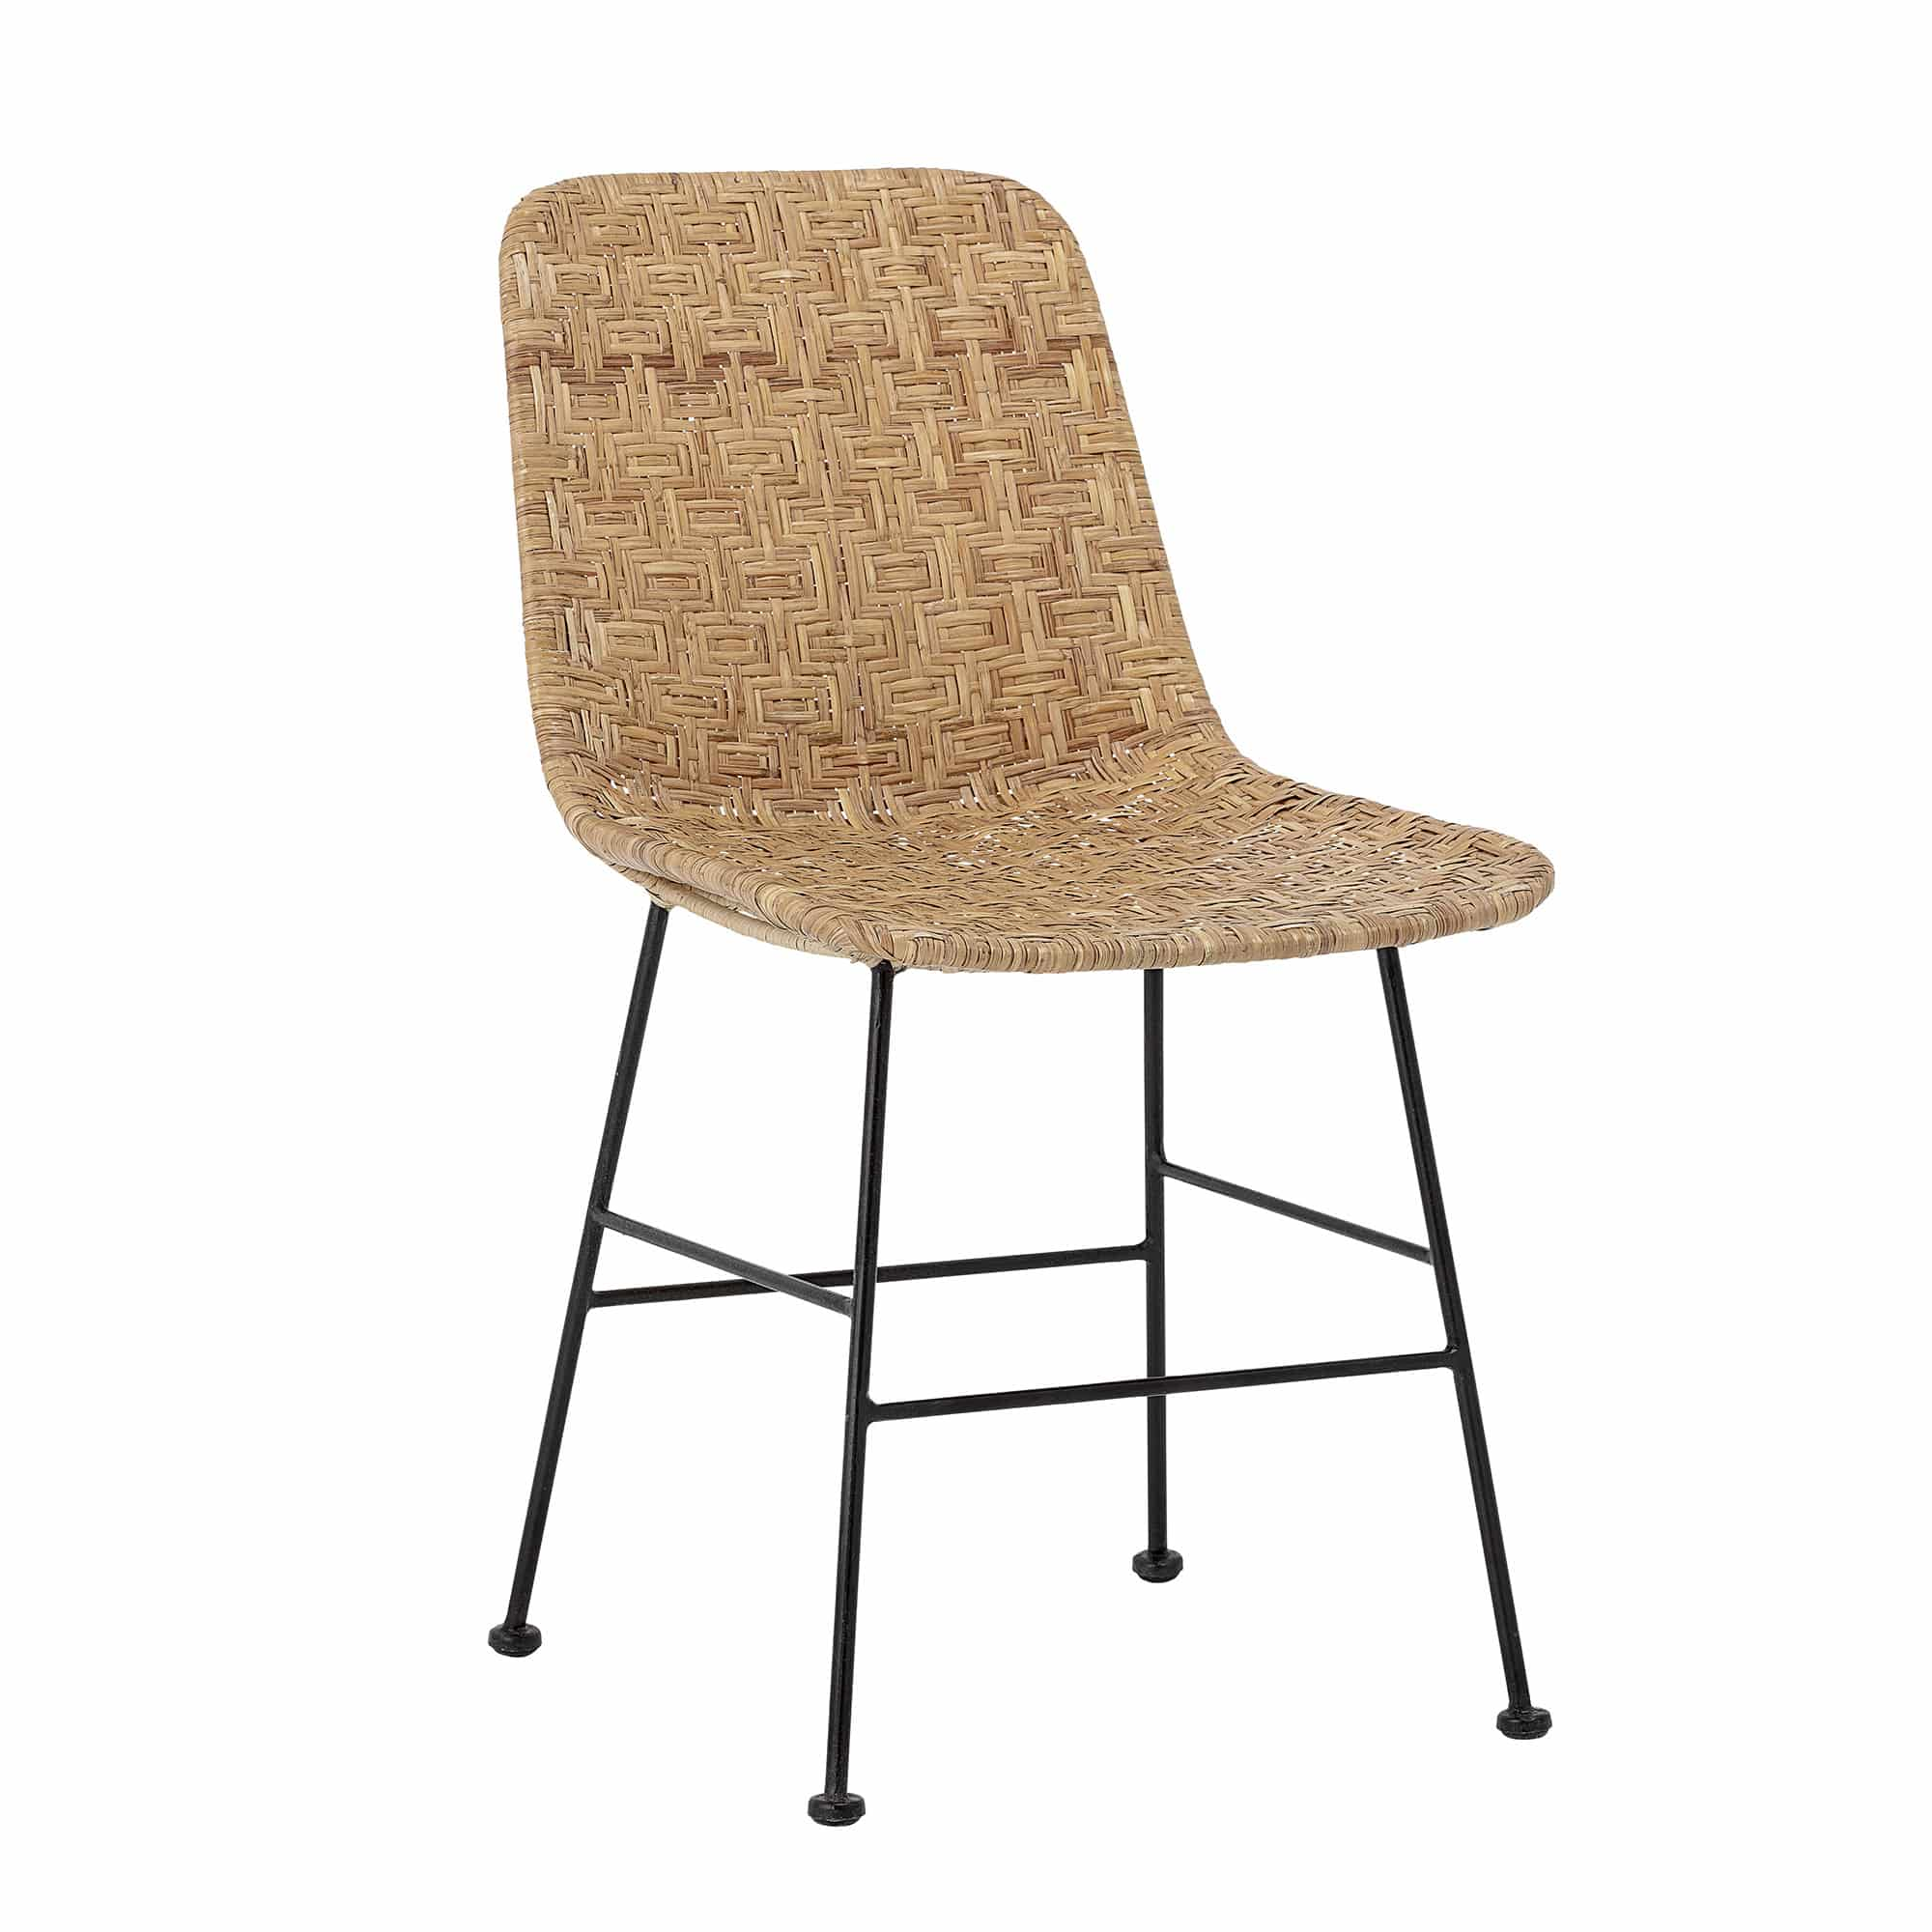 Kitty Dining Chair Nature Rattan